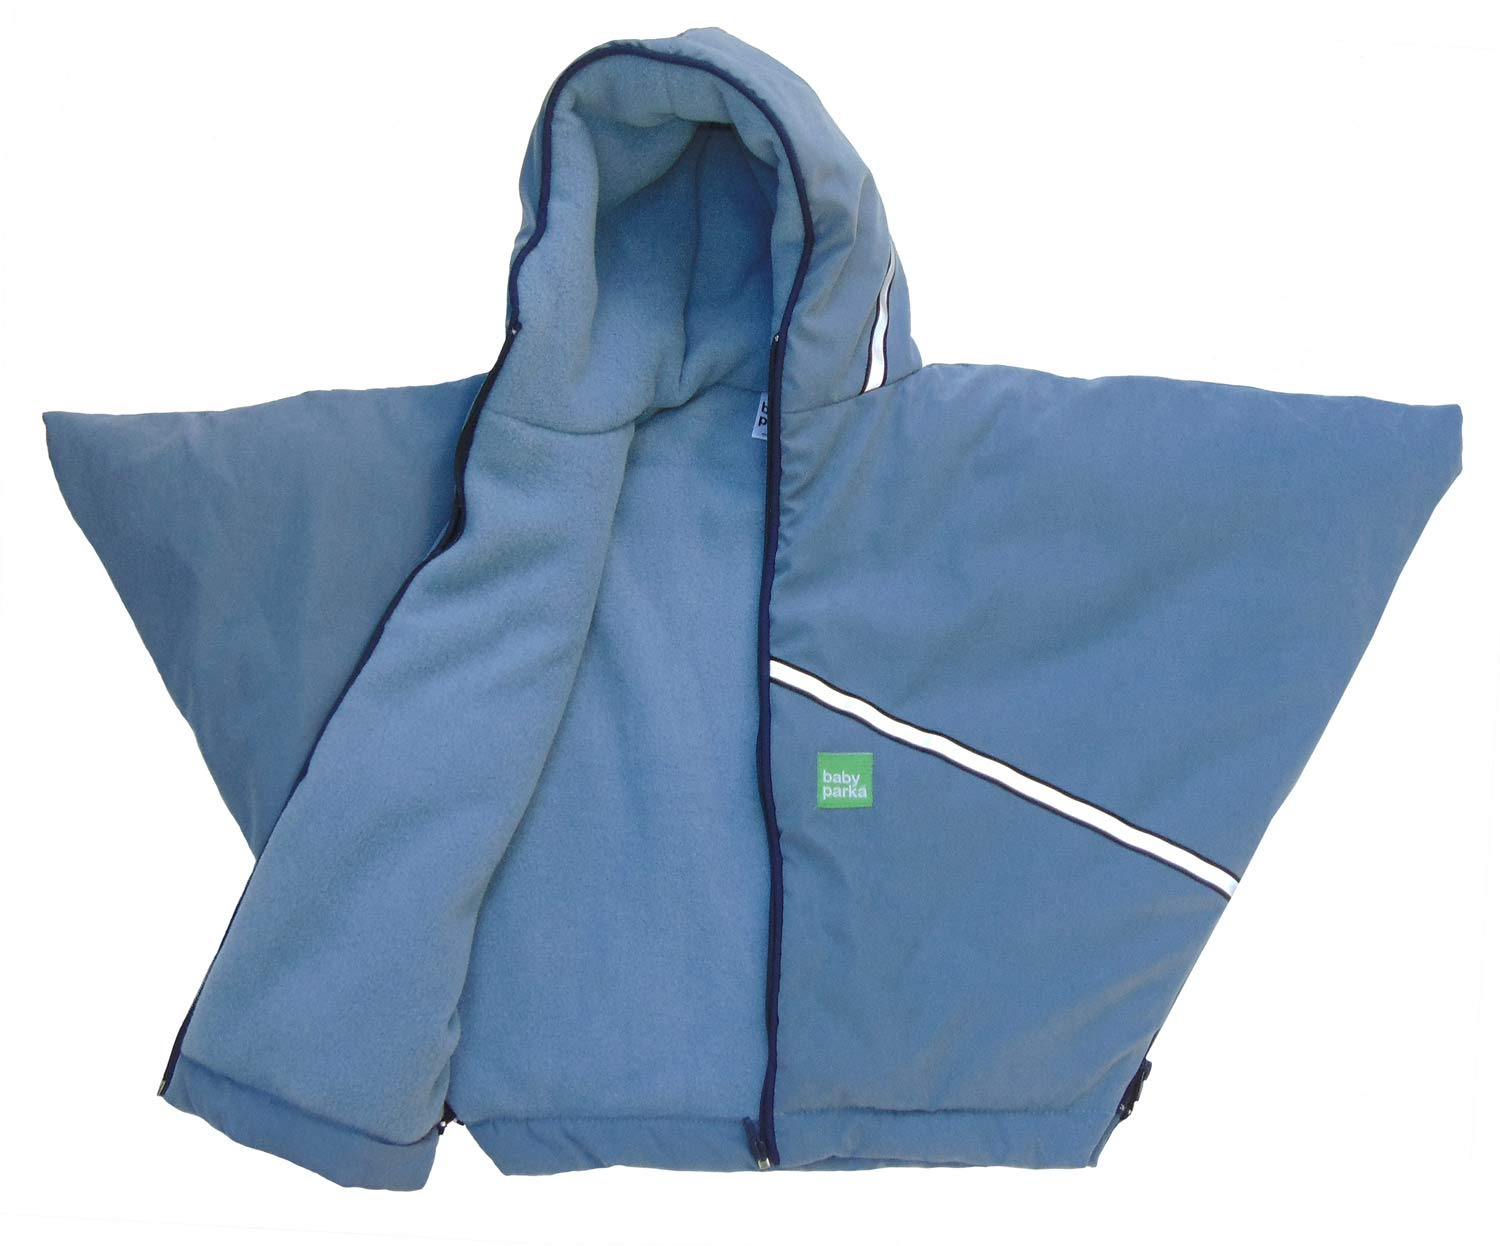 Baby Parka Toddler Car Seat Cover/Coat, Blue